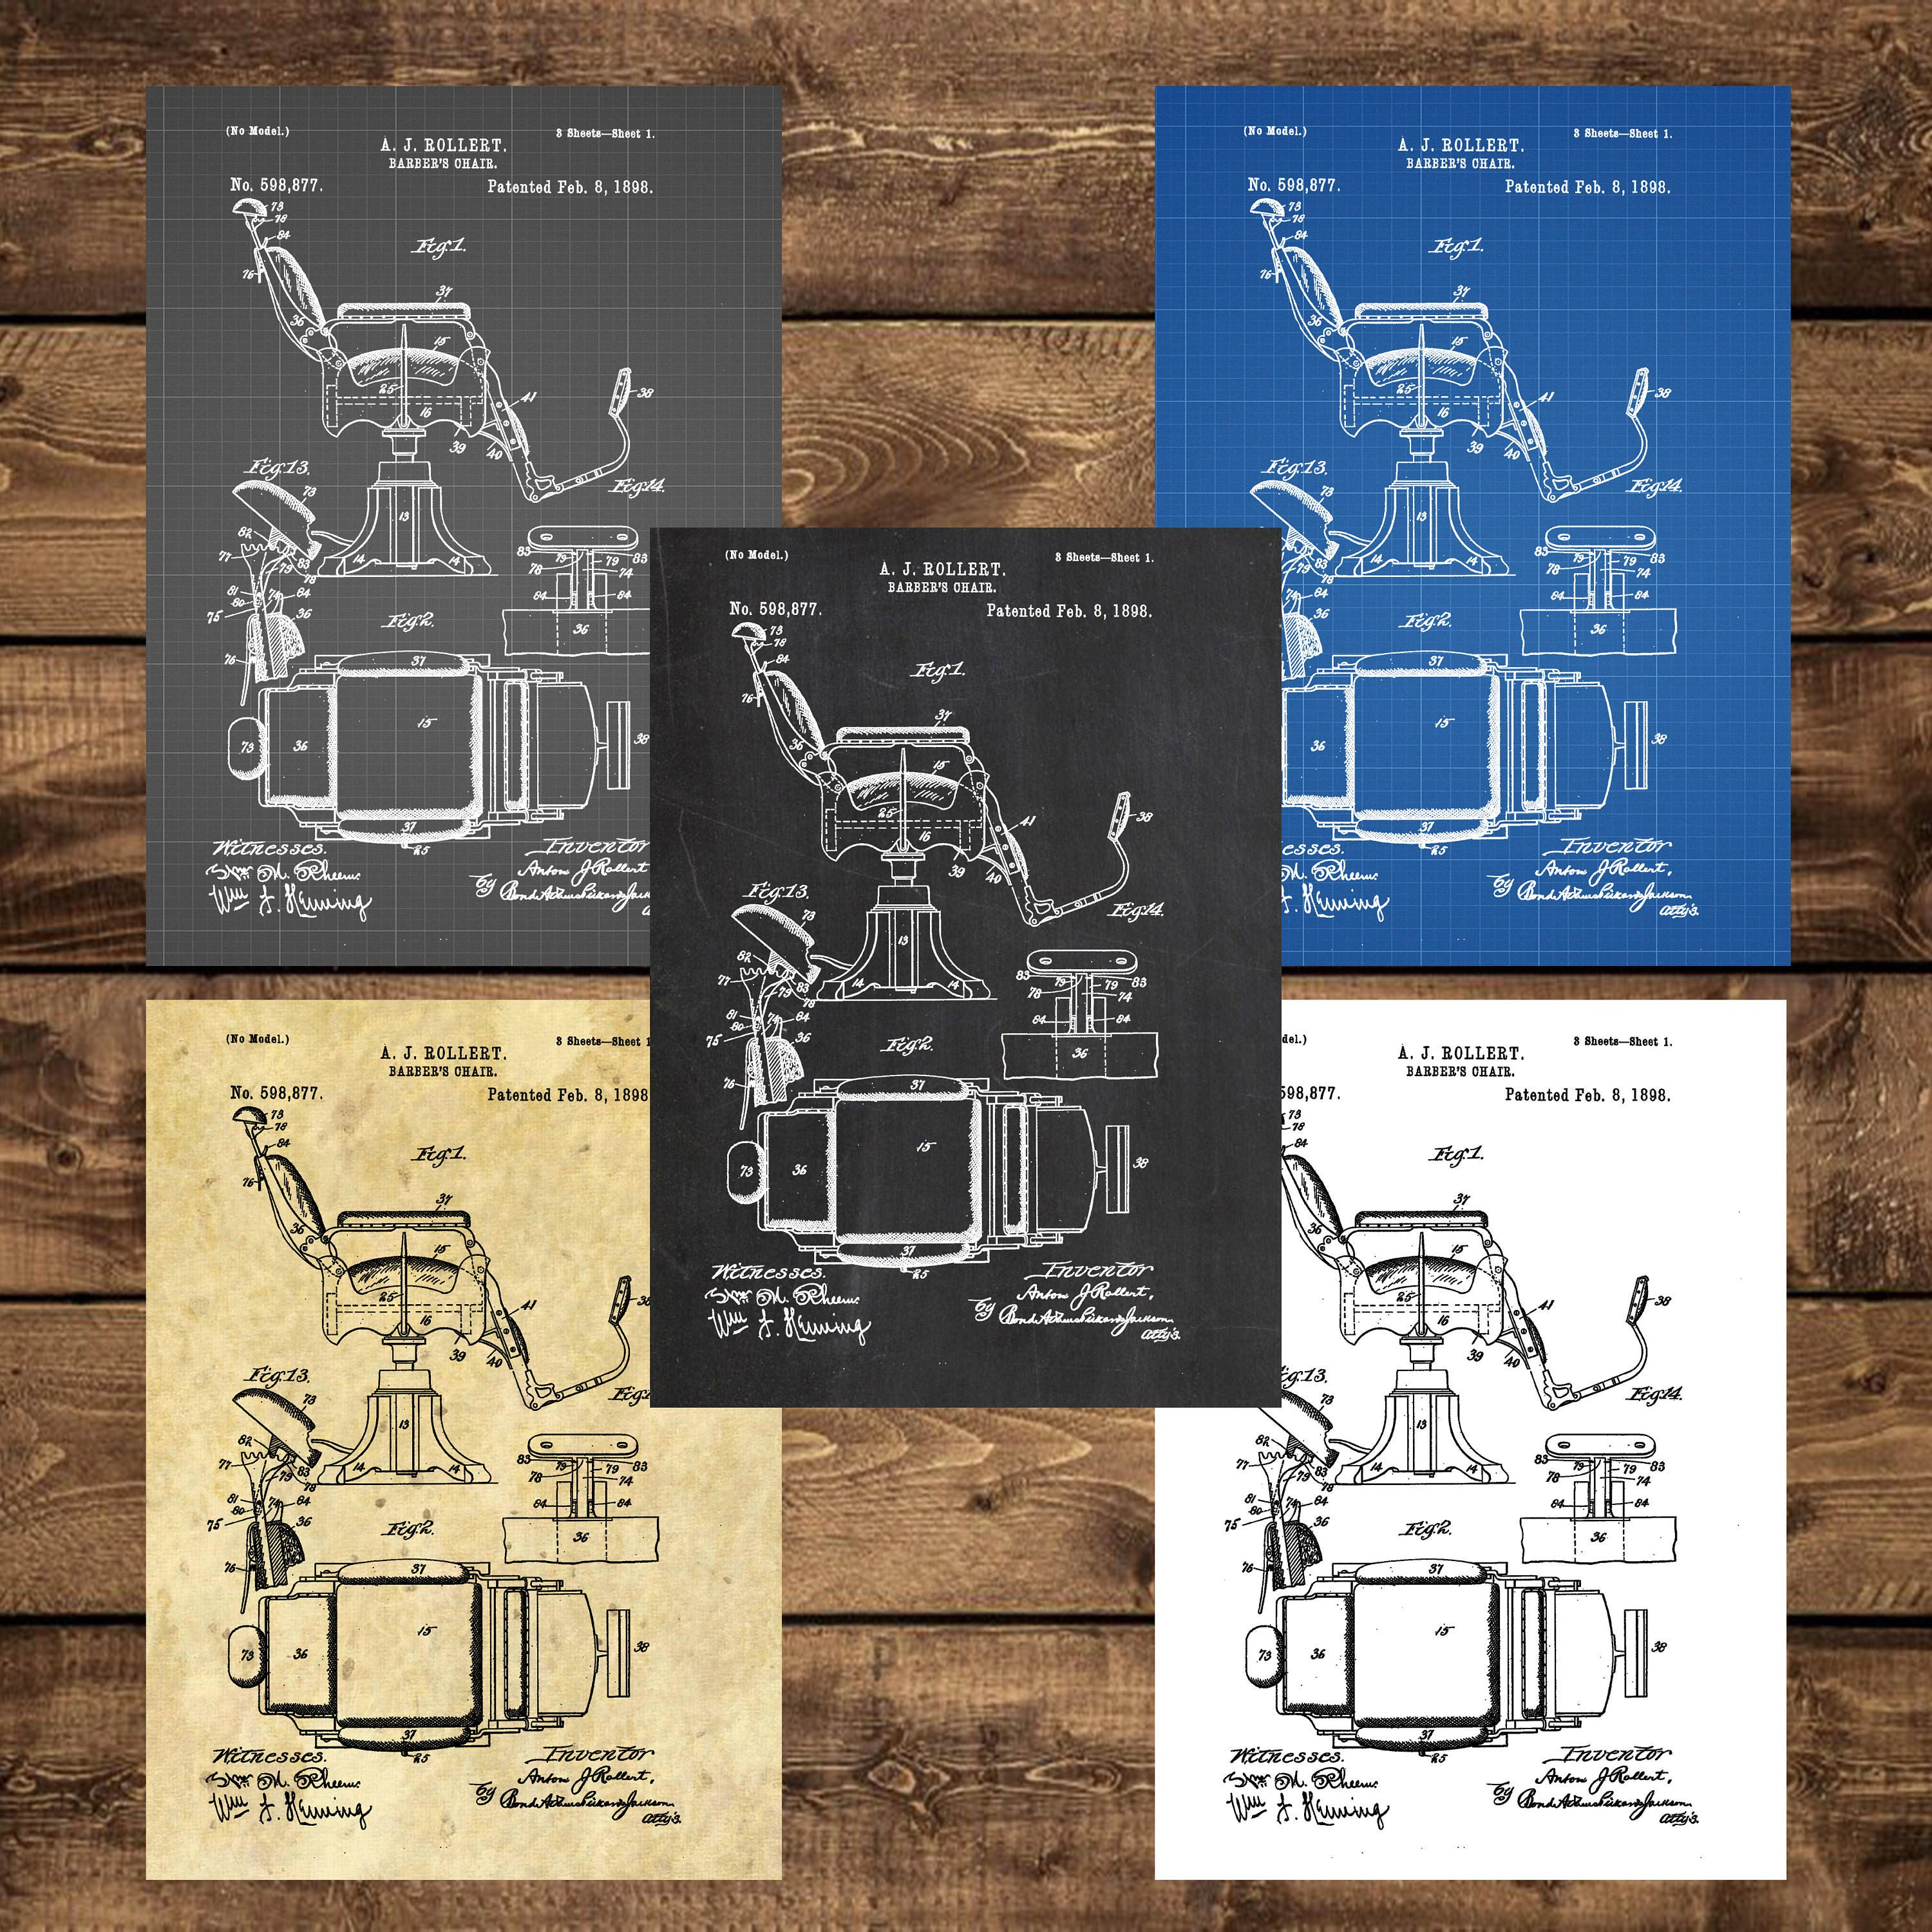 Instant download barber chair patent barber chair poster barber instant download barber chair patent barber chair poster barber chair print barber chair art barber chair decorbarber chair blueprint malvernweather Images